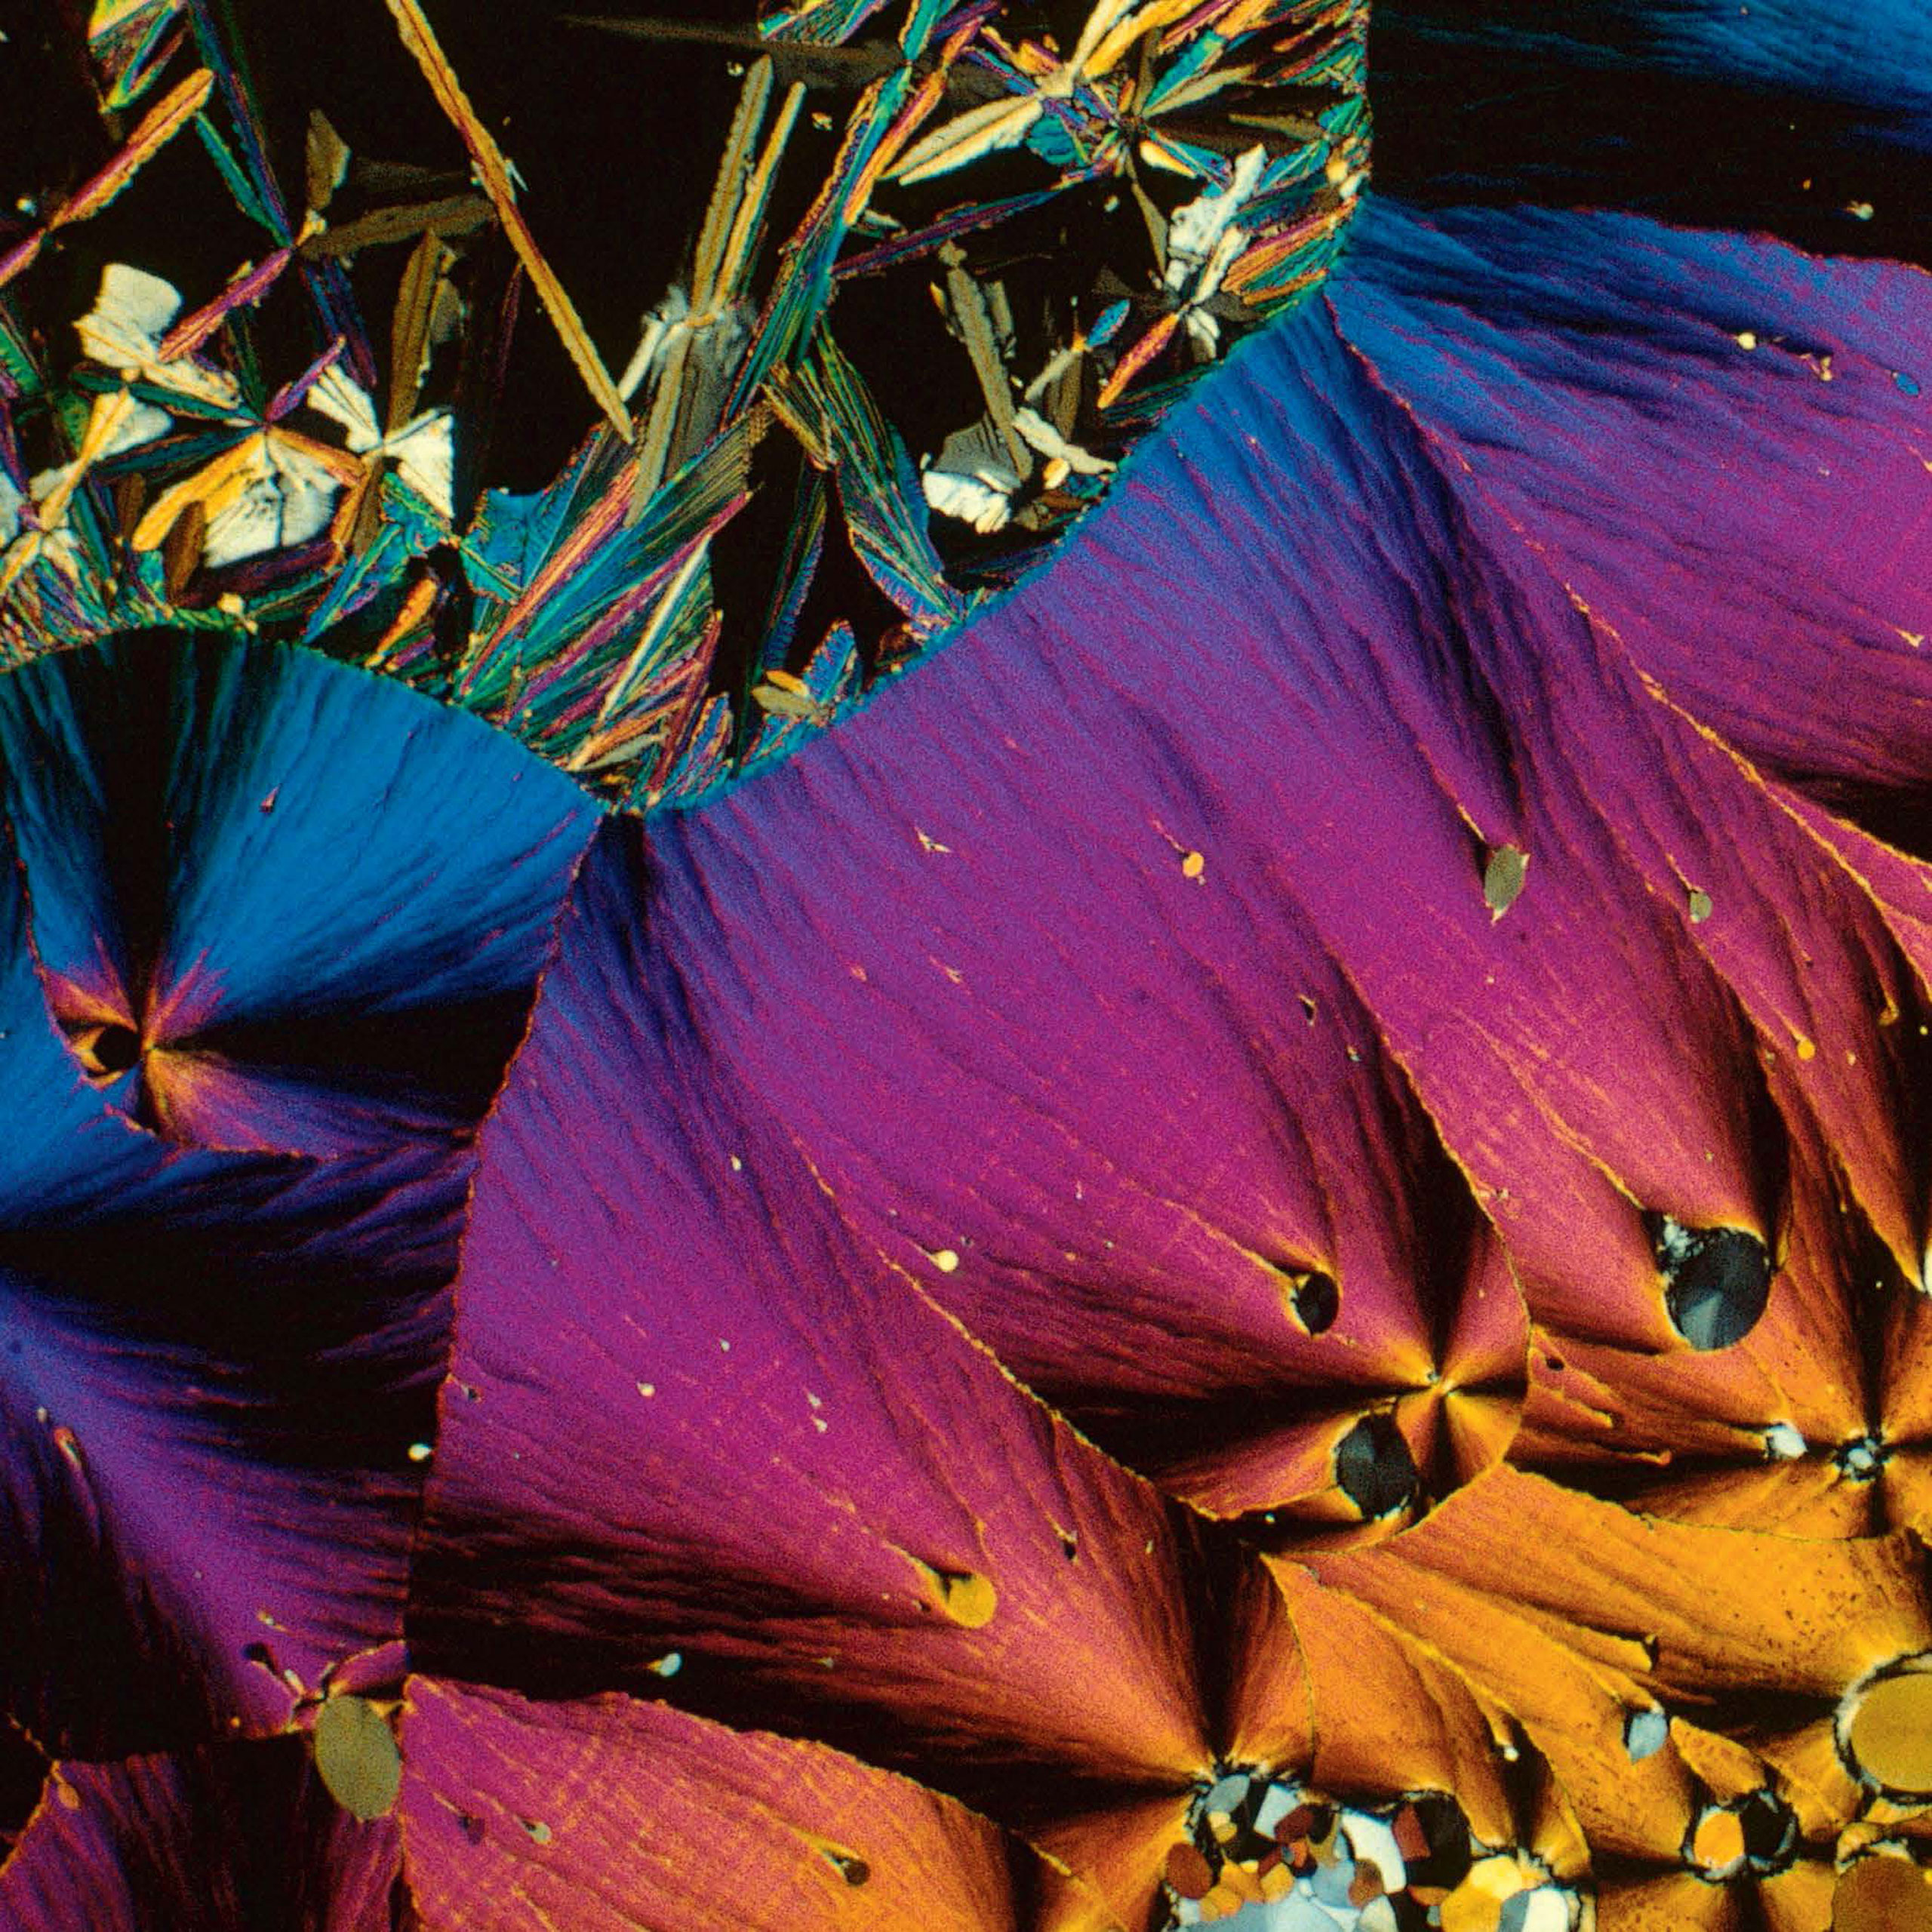 <b>Serotonin crystals</b> (polarized light micrograph)